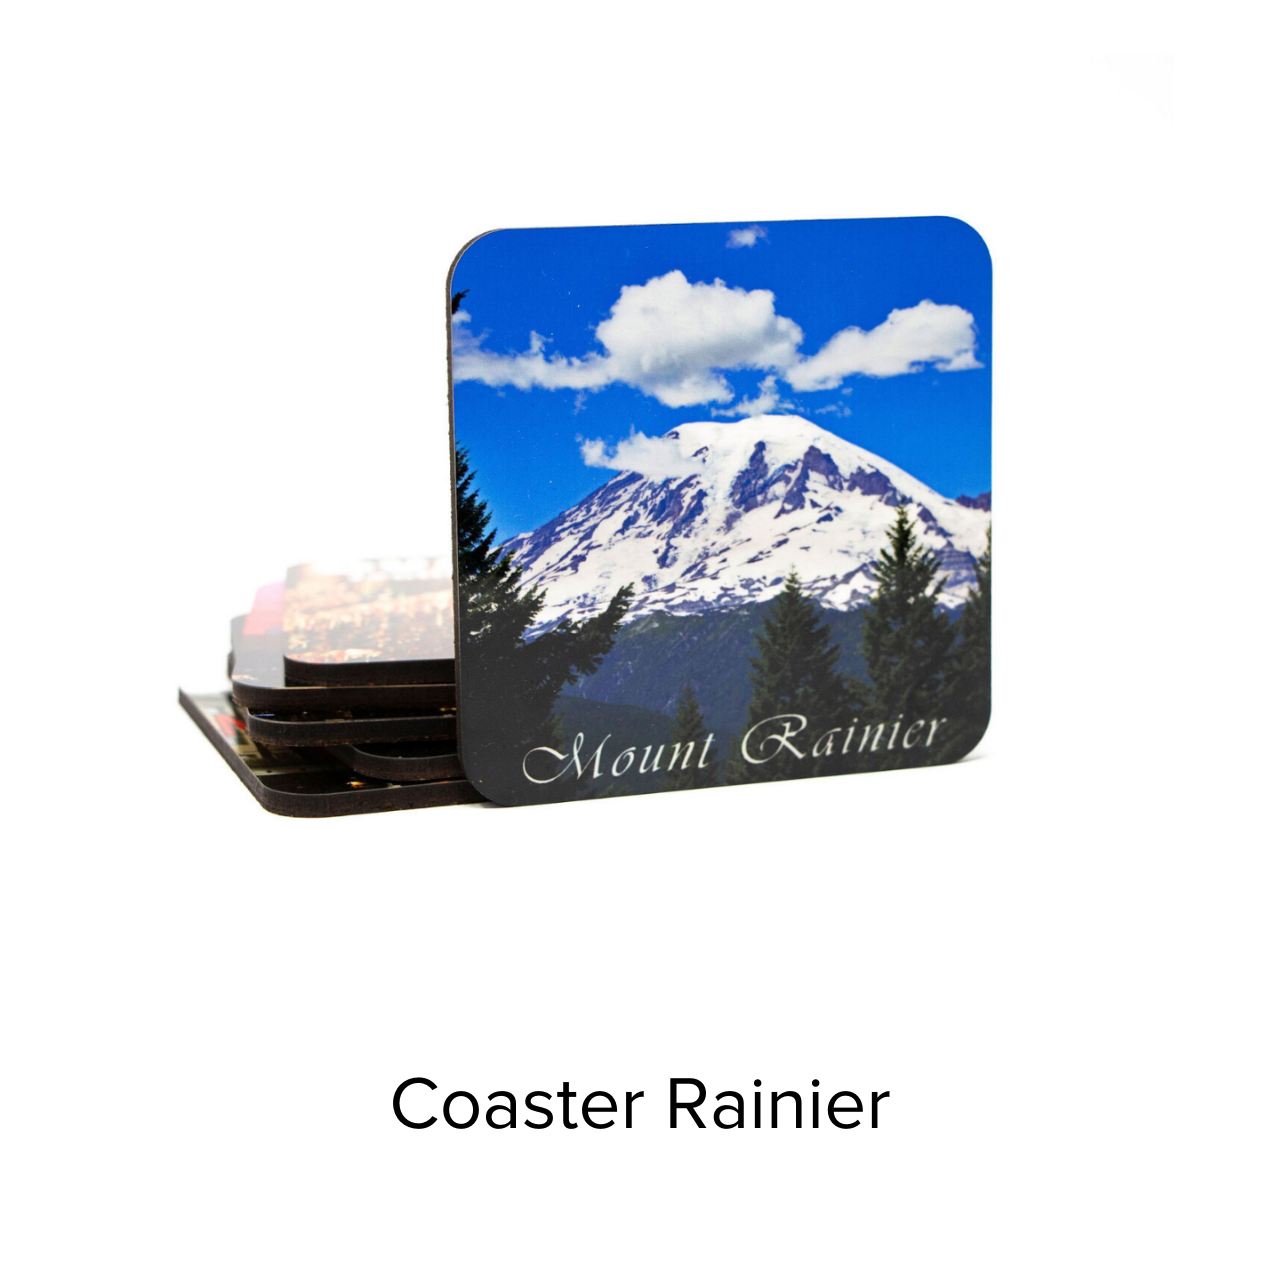 Royal Phoenix Coaster Rainier